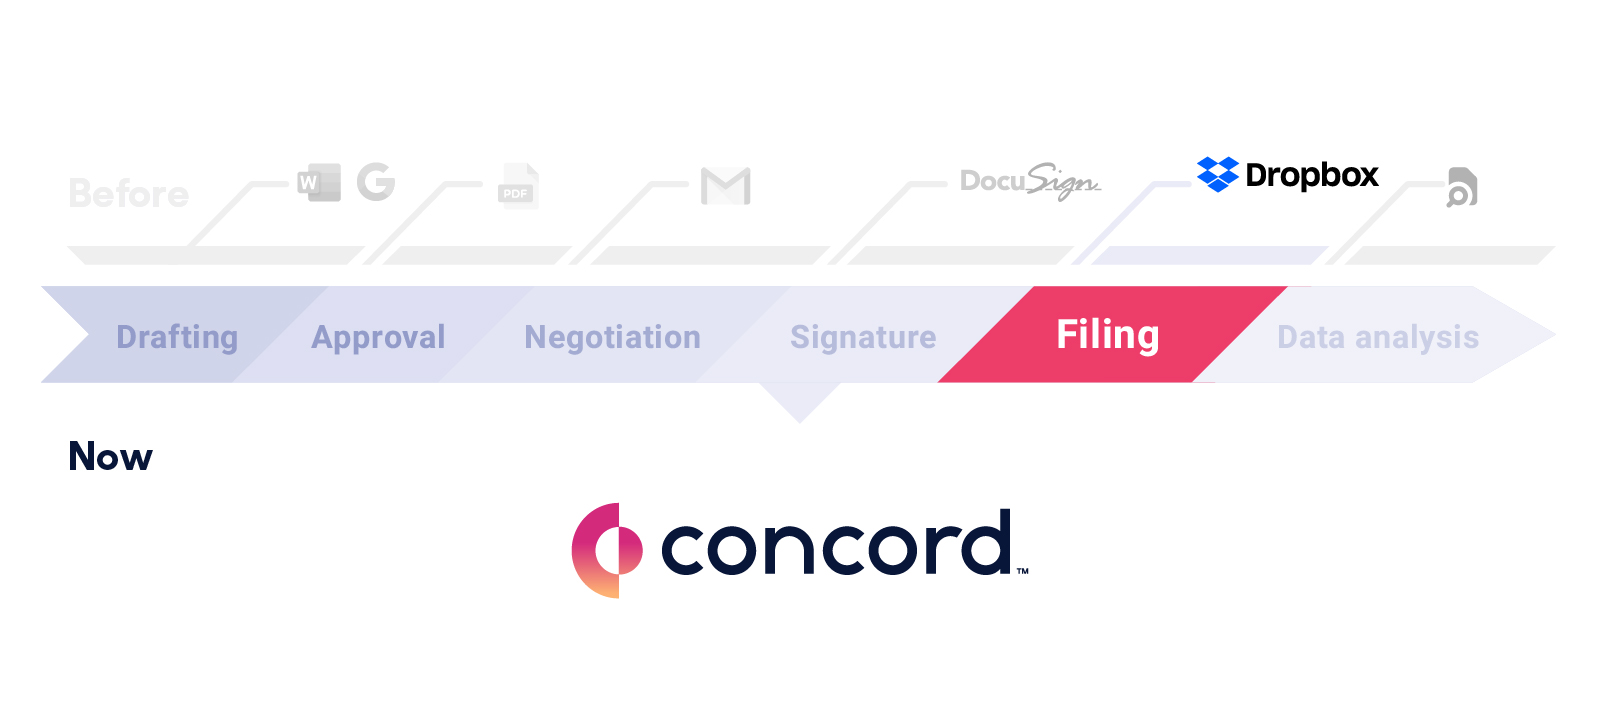 This article is about the last stage of the contract lifecycle, secure document storage and establishing a repository.